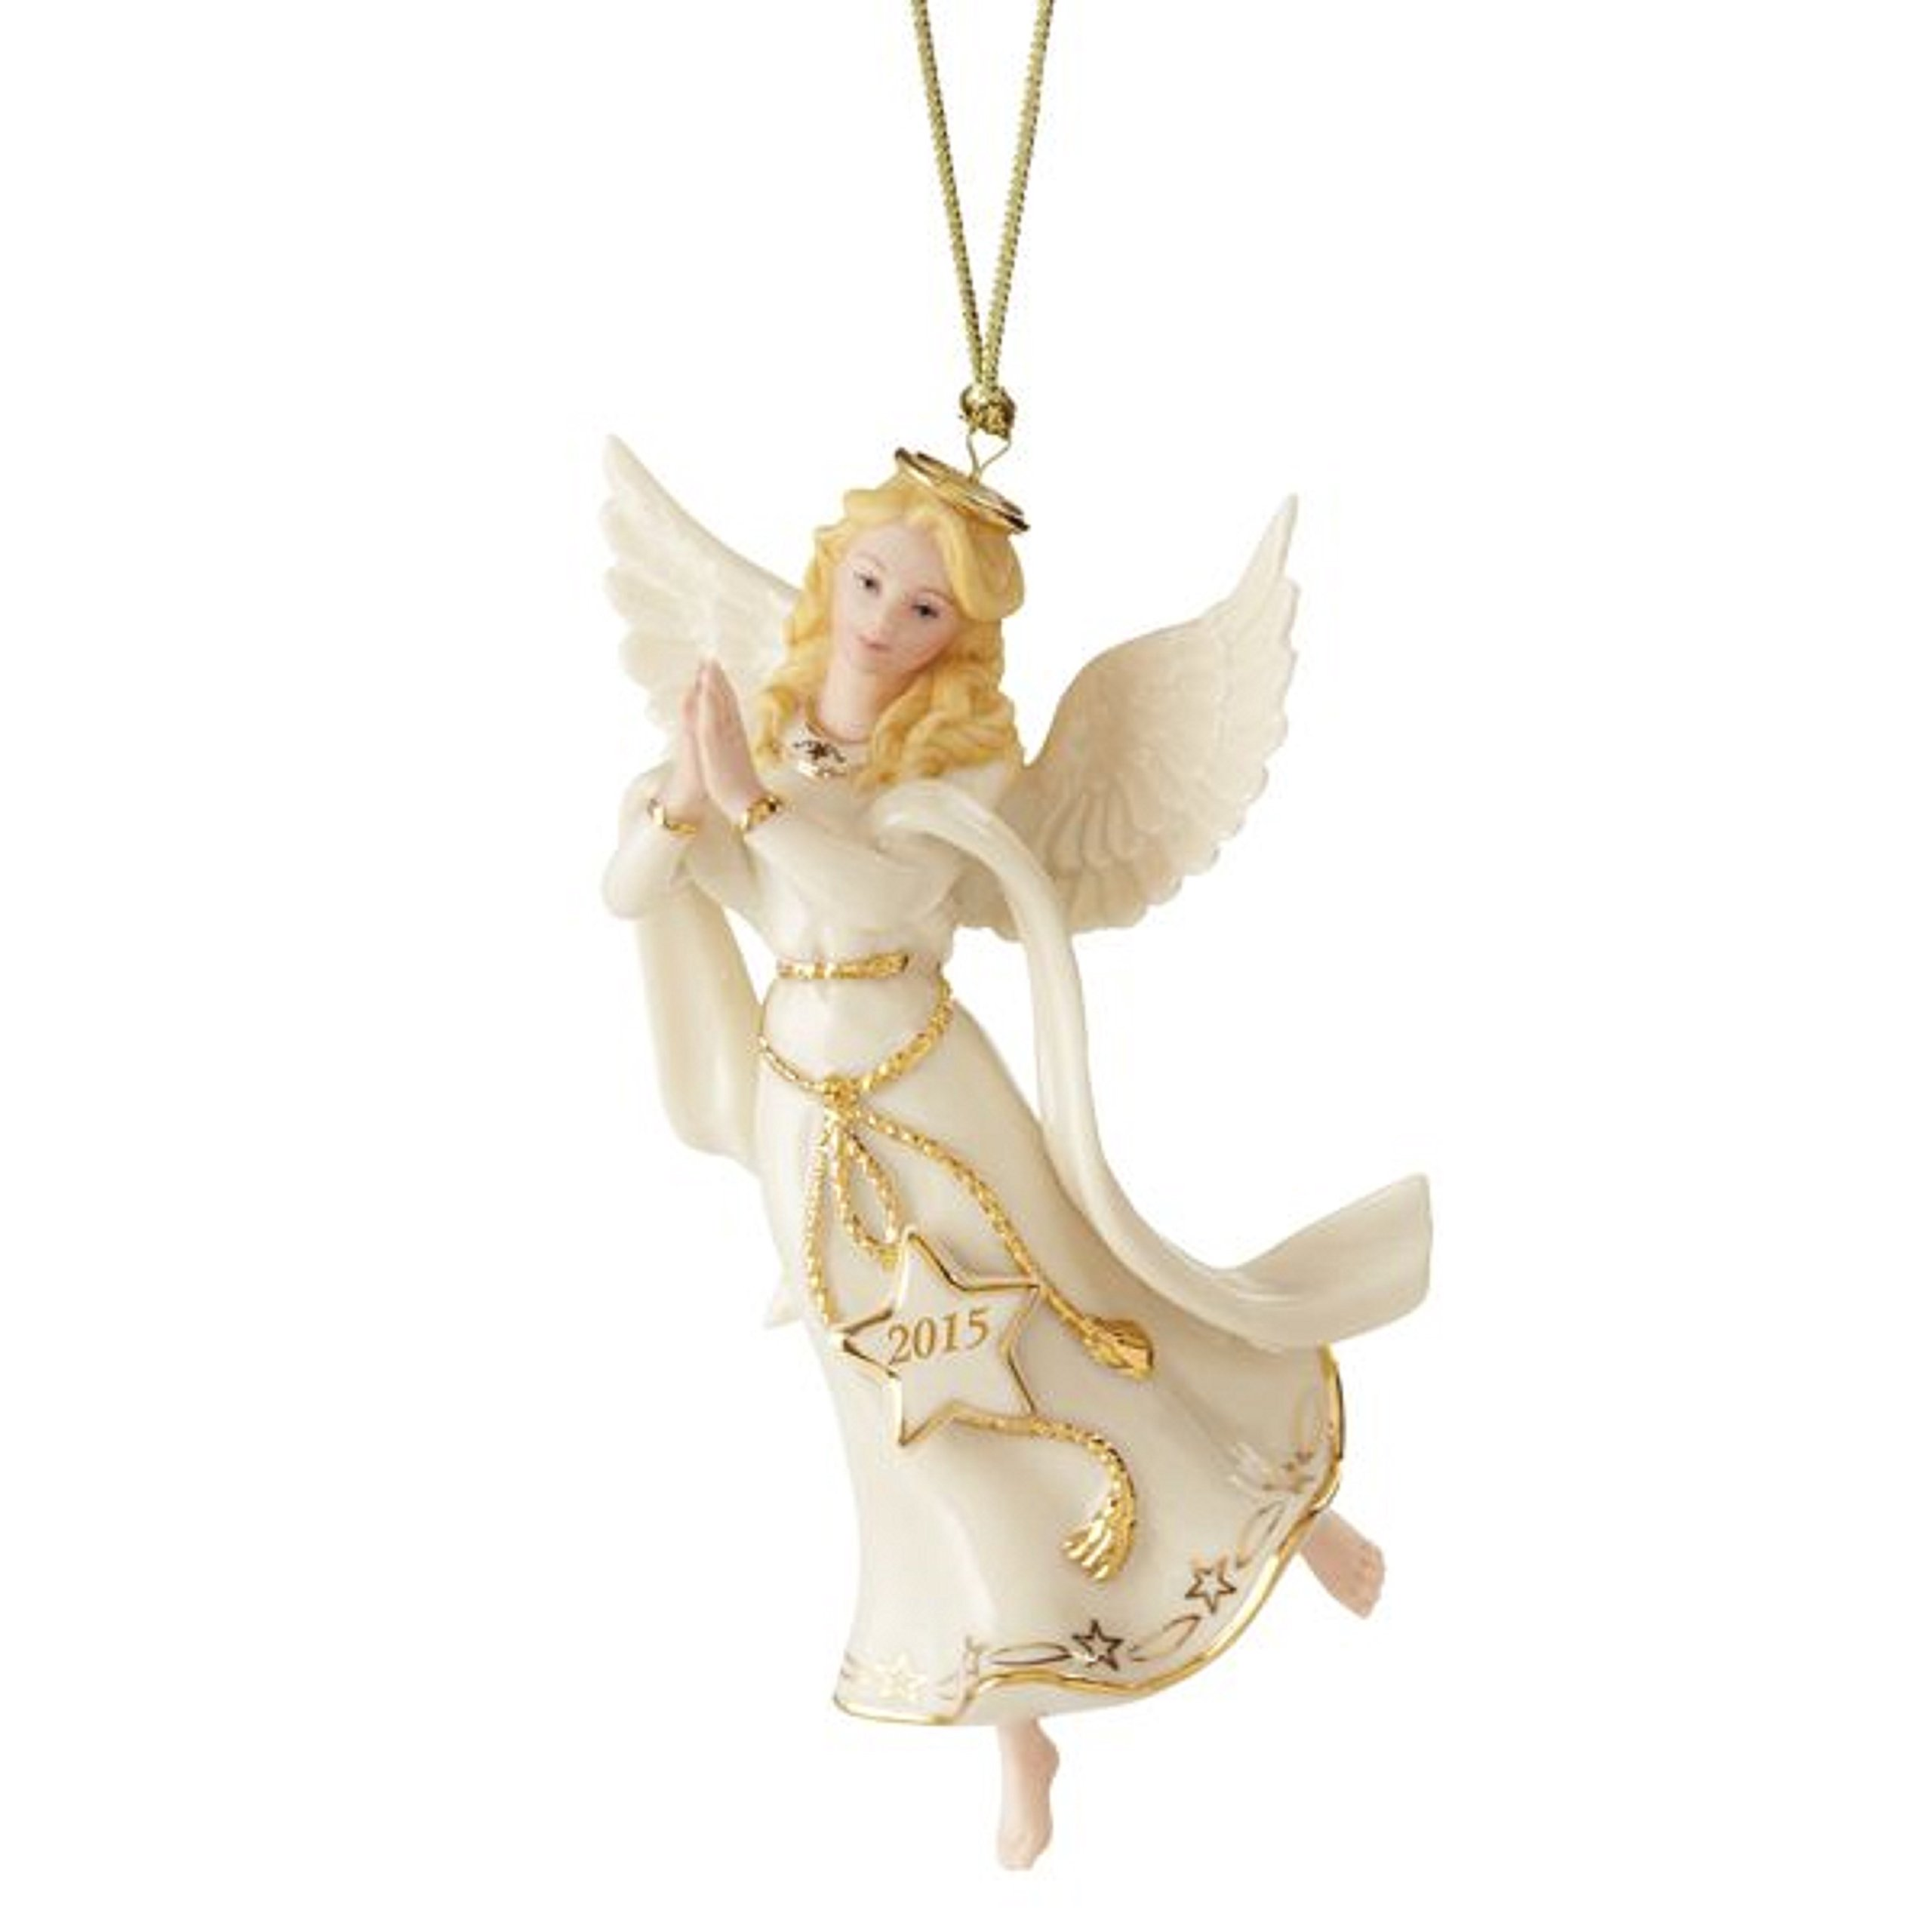 Lenox Christmas 2015 Annual Angel of Adoration Ornament Figurine